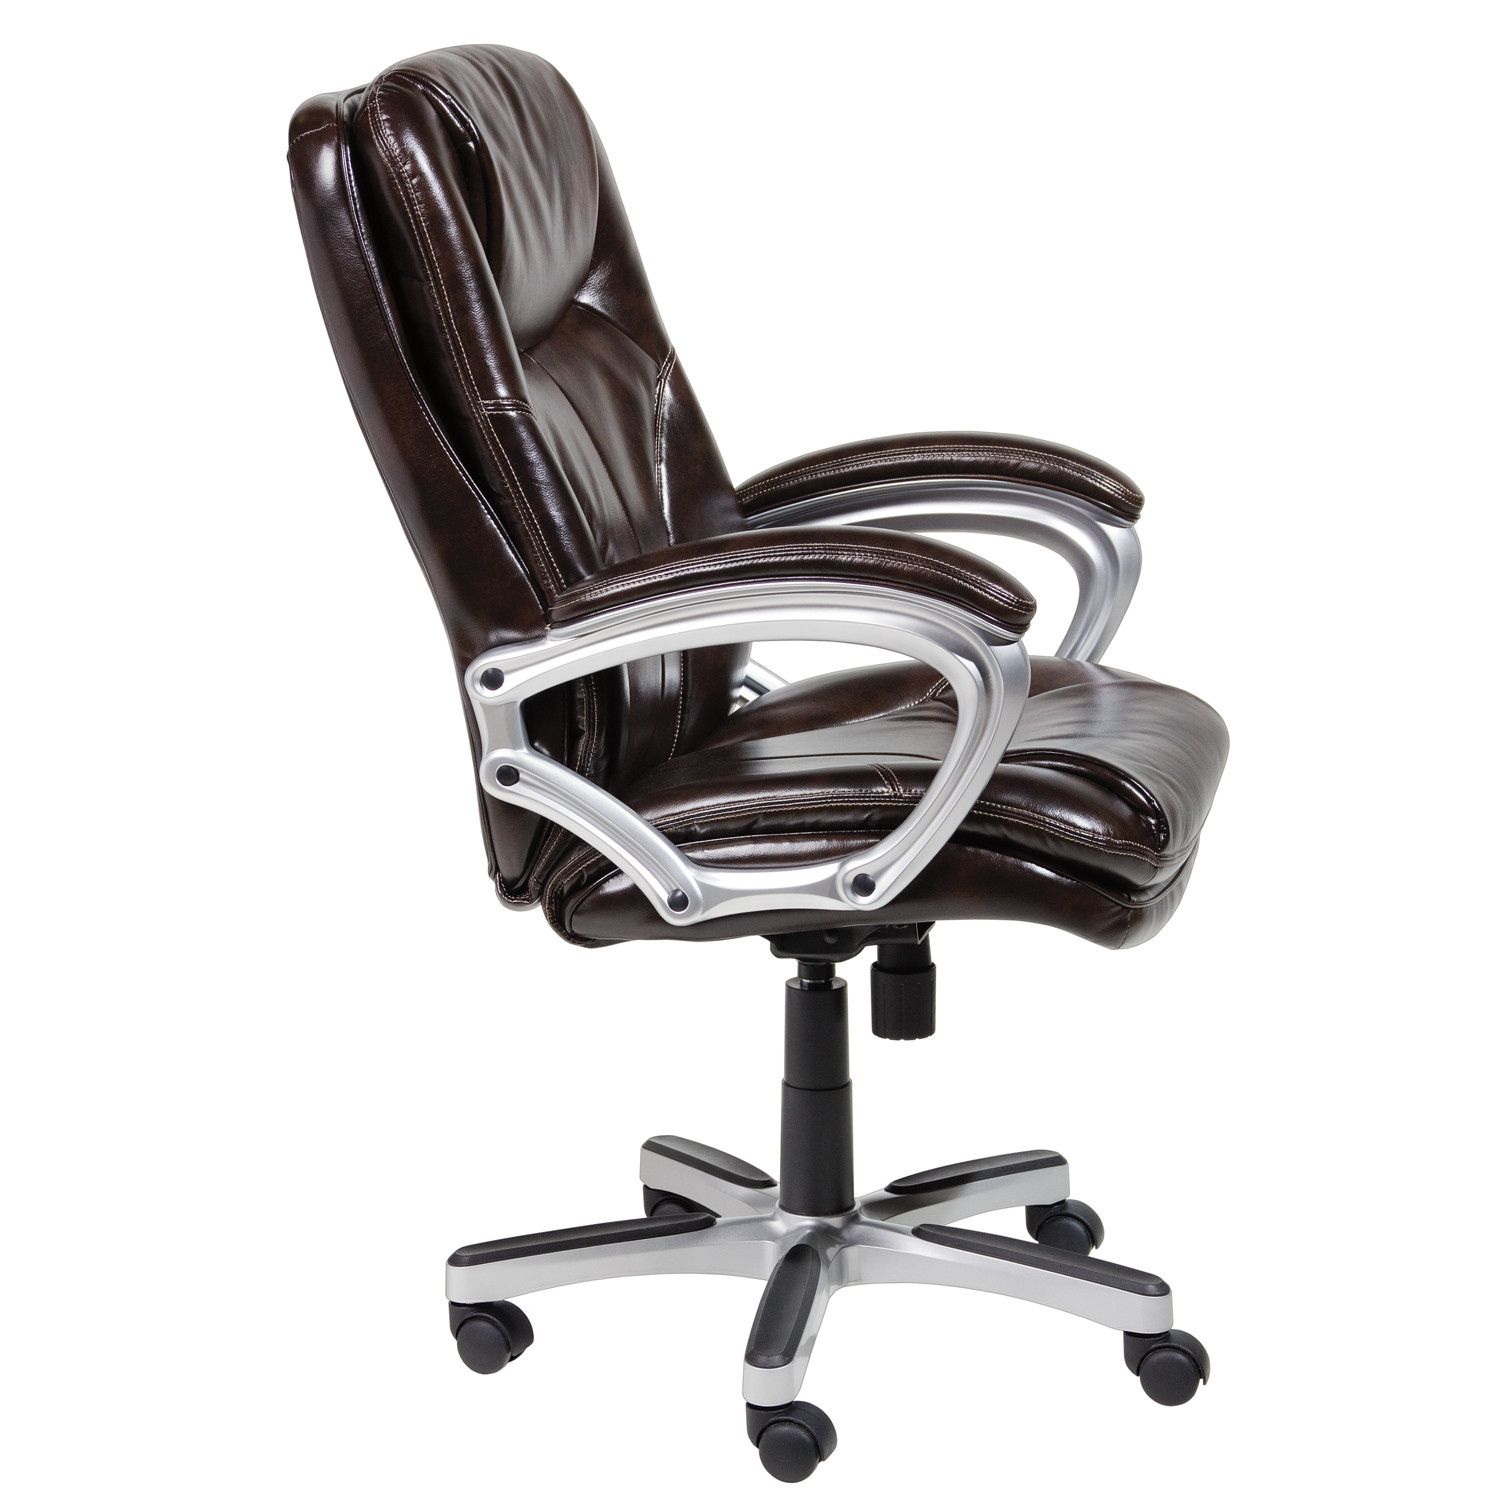 Superbe 70+ Serta Executive High Back Chair   Modern Home Office Furniture Check  More At Http